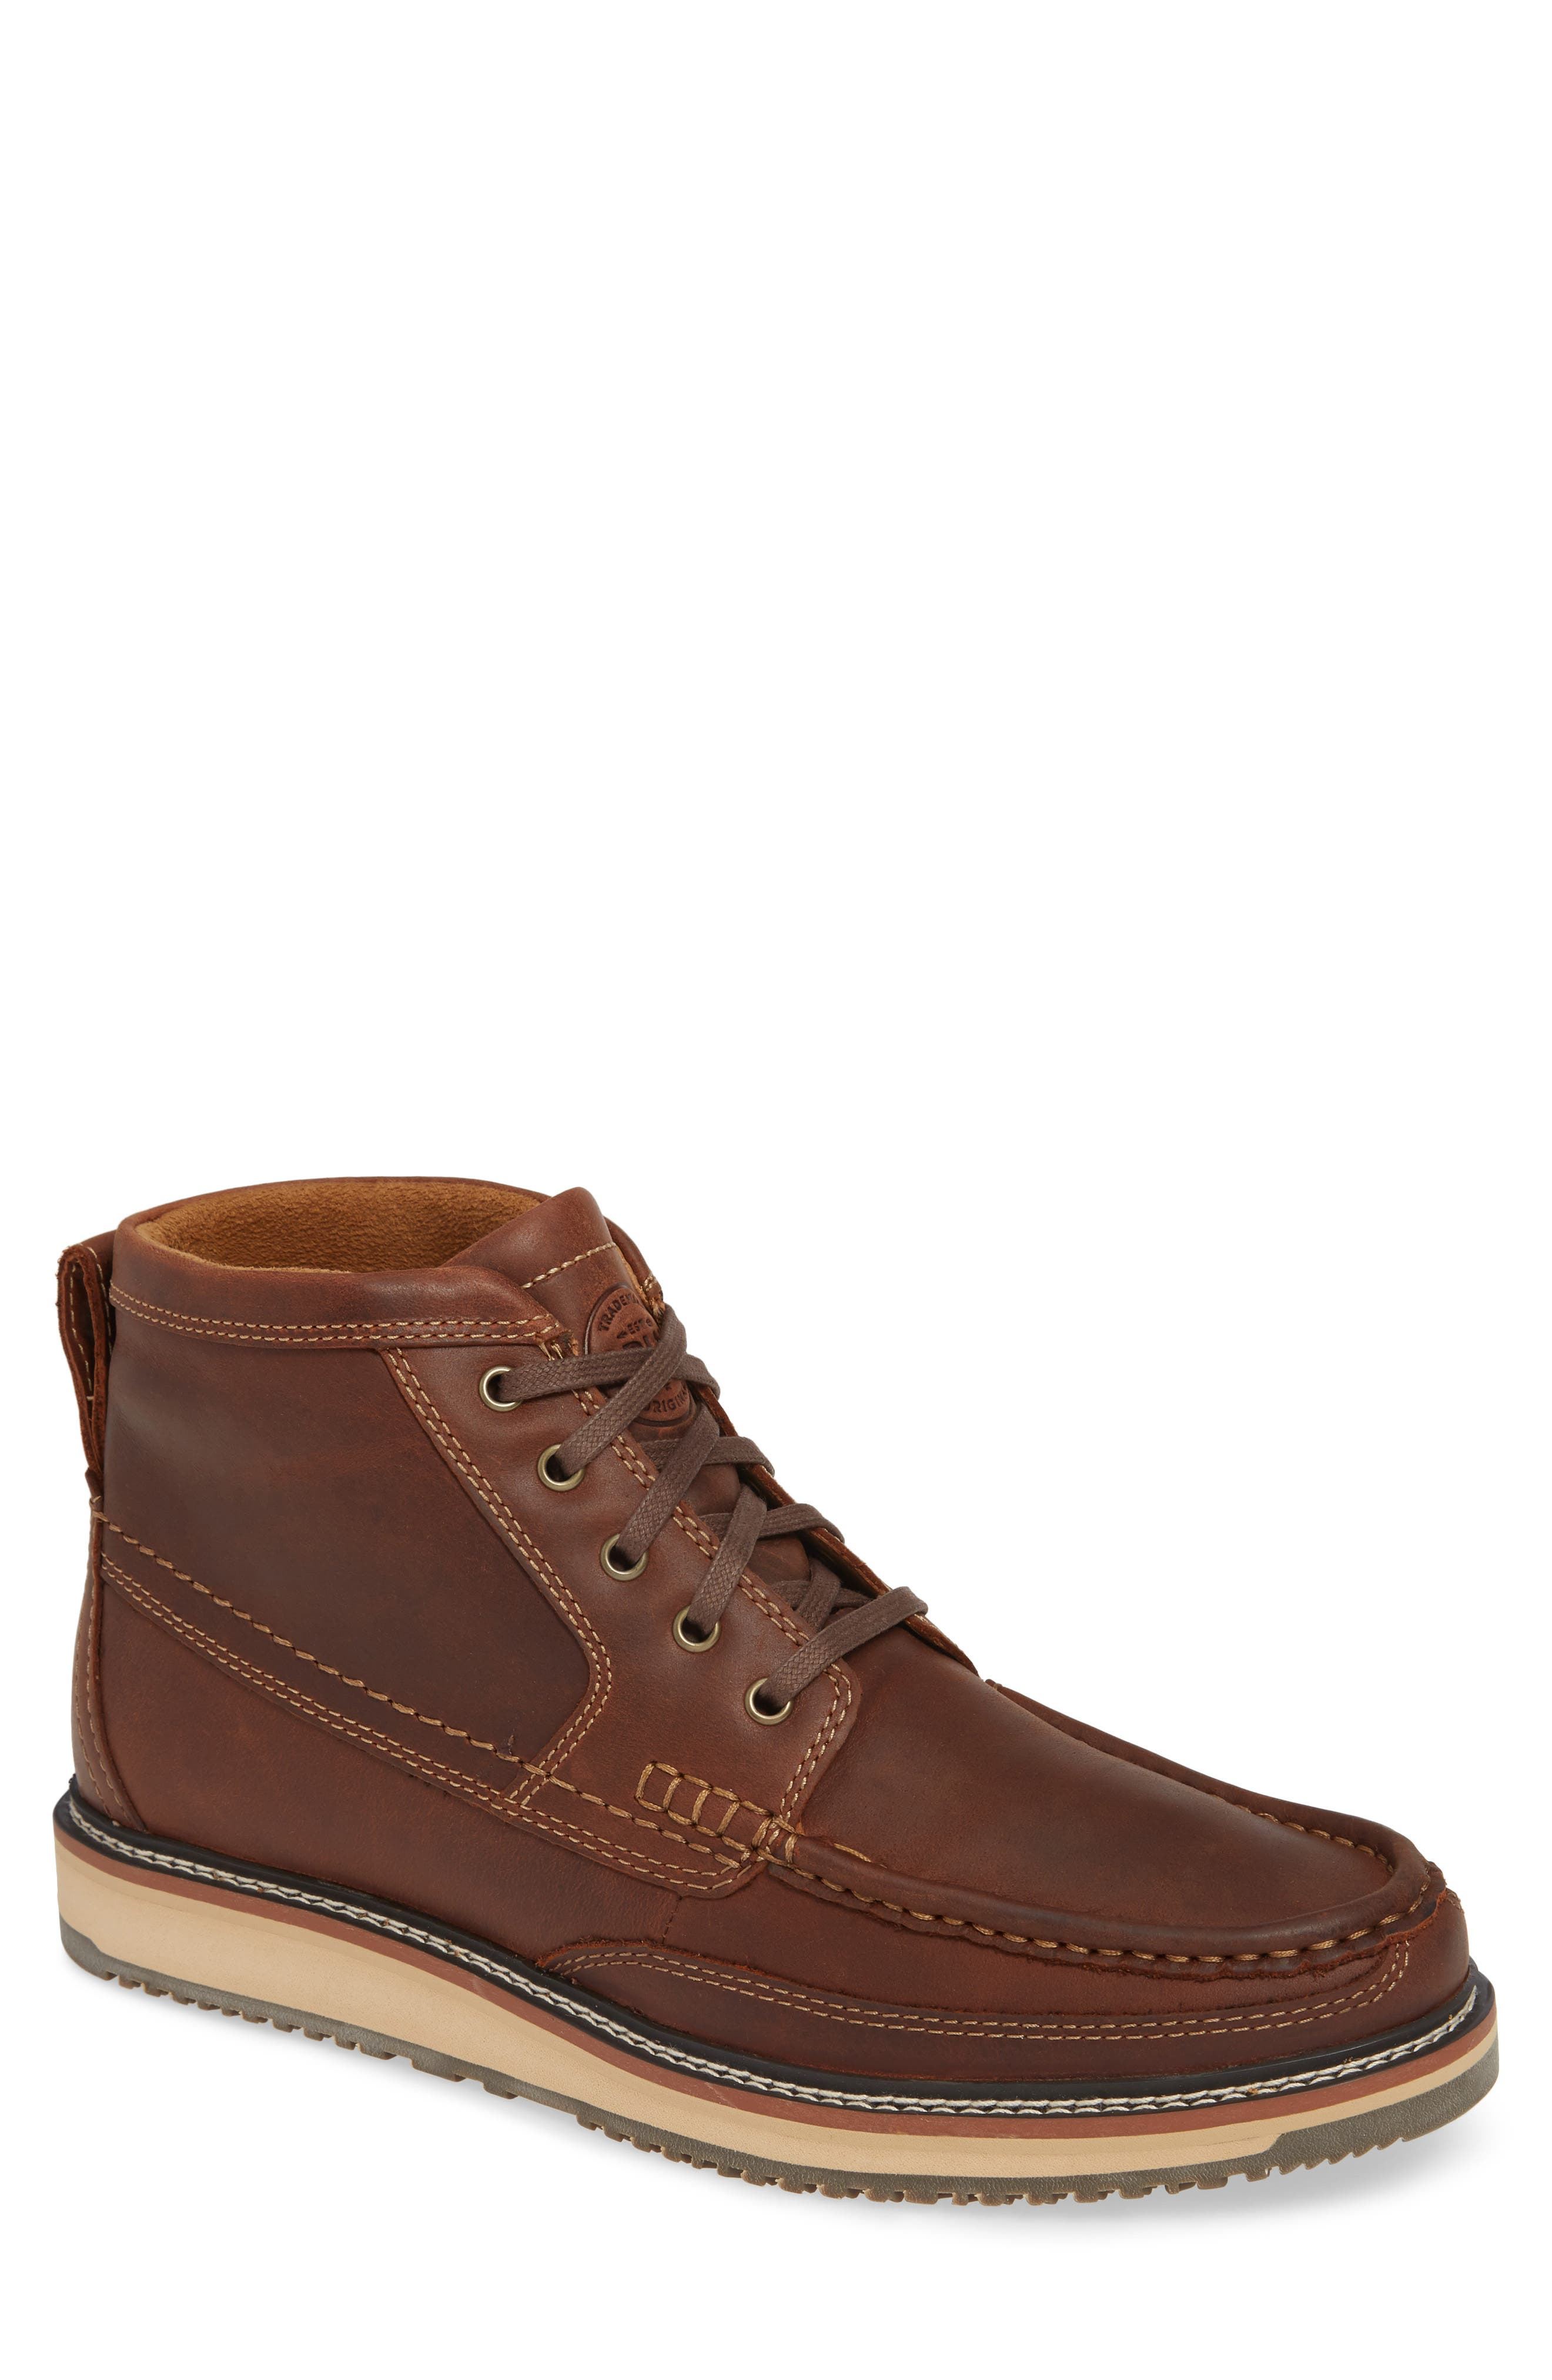 'Lookout' Moc Toe Boot,                             Main thumbnail 1, color,                             FOOTHILL BROWN LEATHER